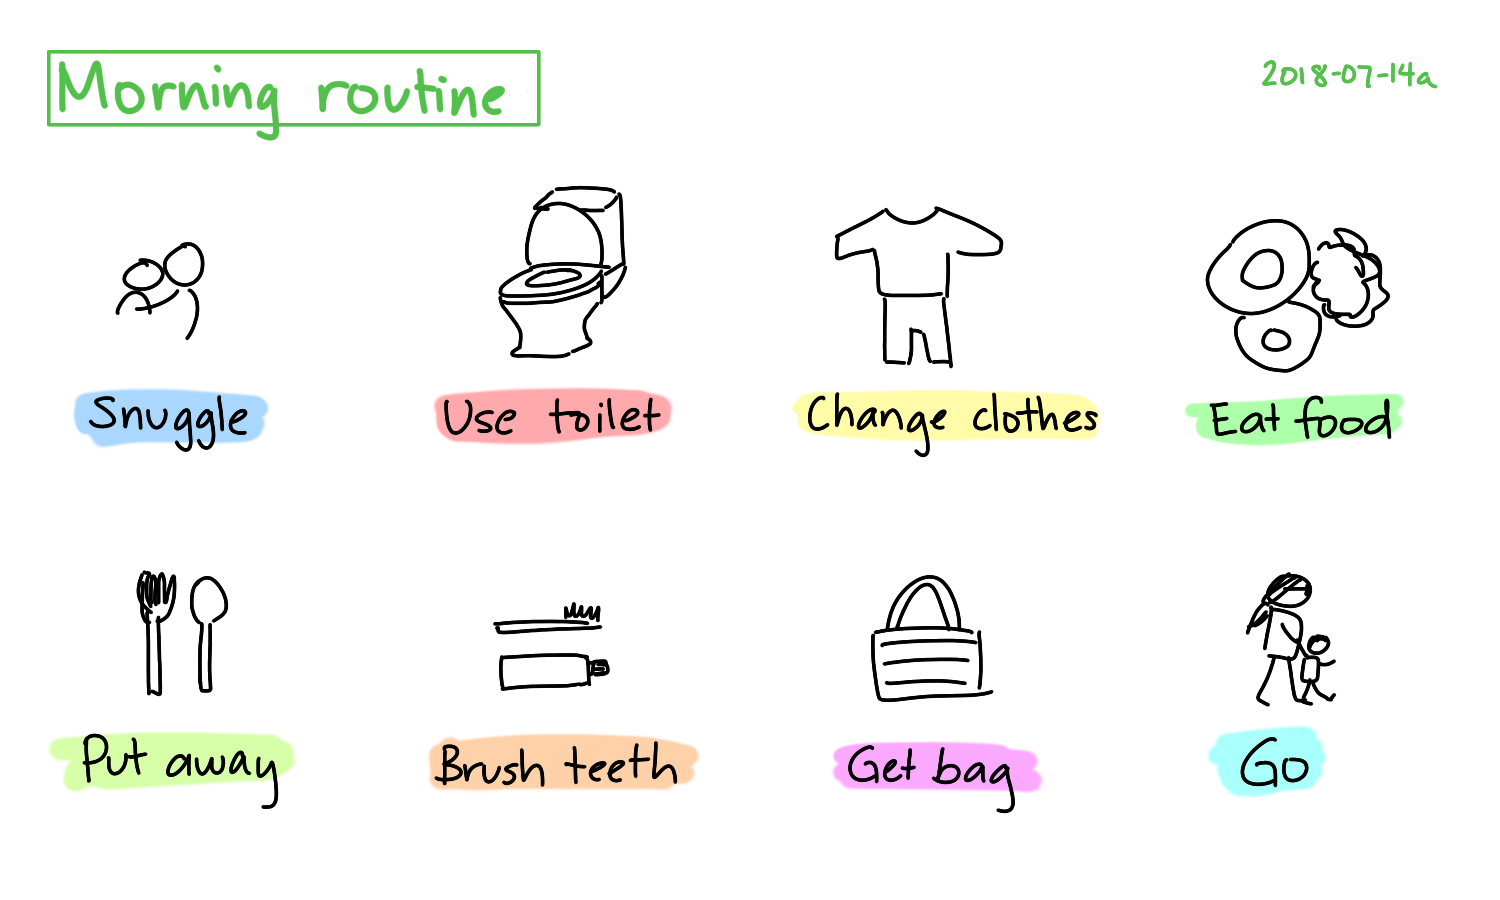 2018-07-14a Morning routine #routine #household